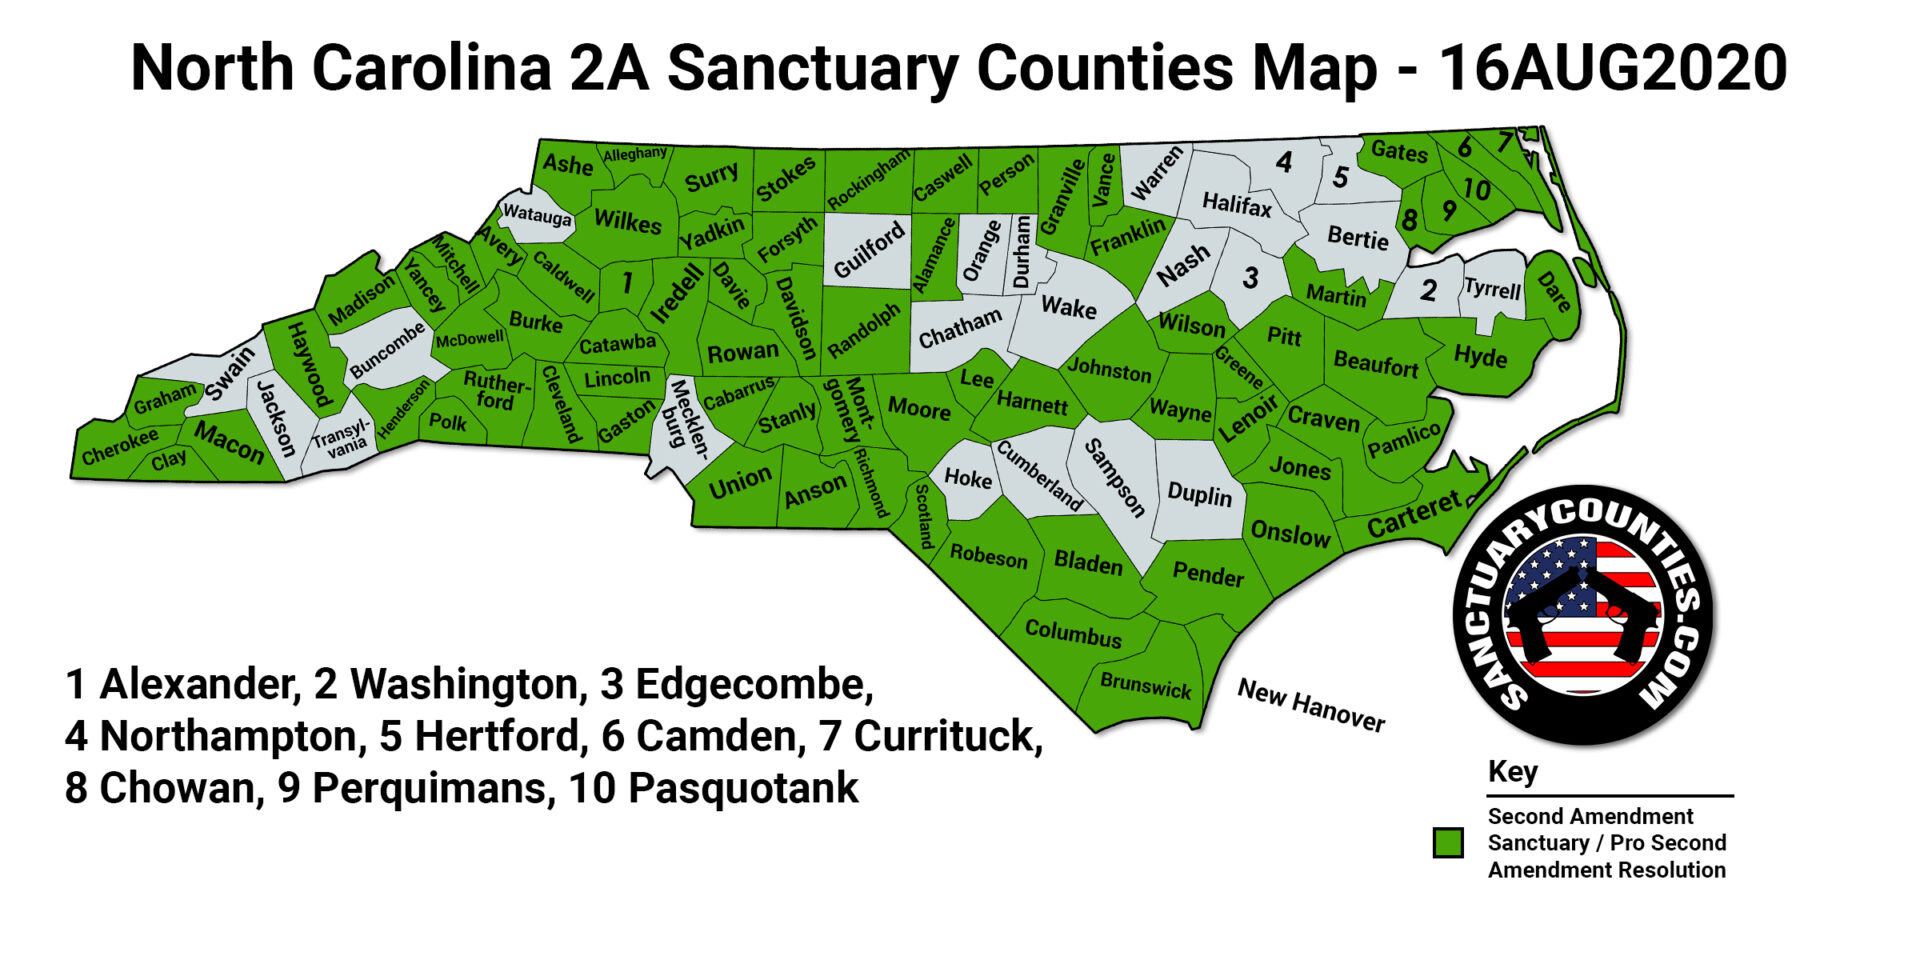 North Carolina 2A Sanctuary Counties Map